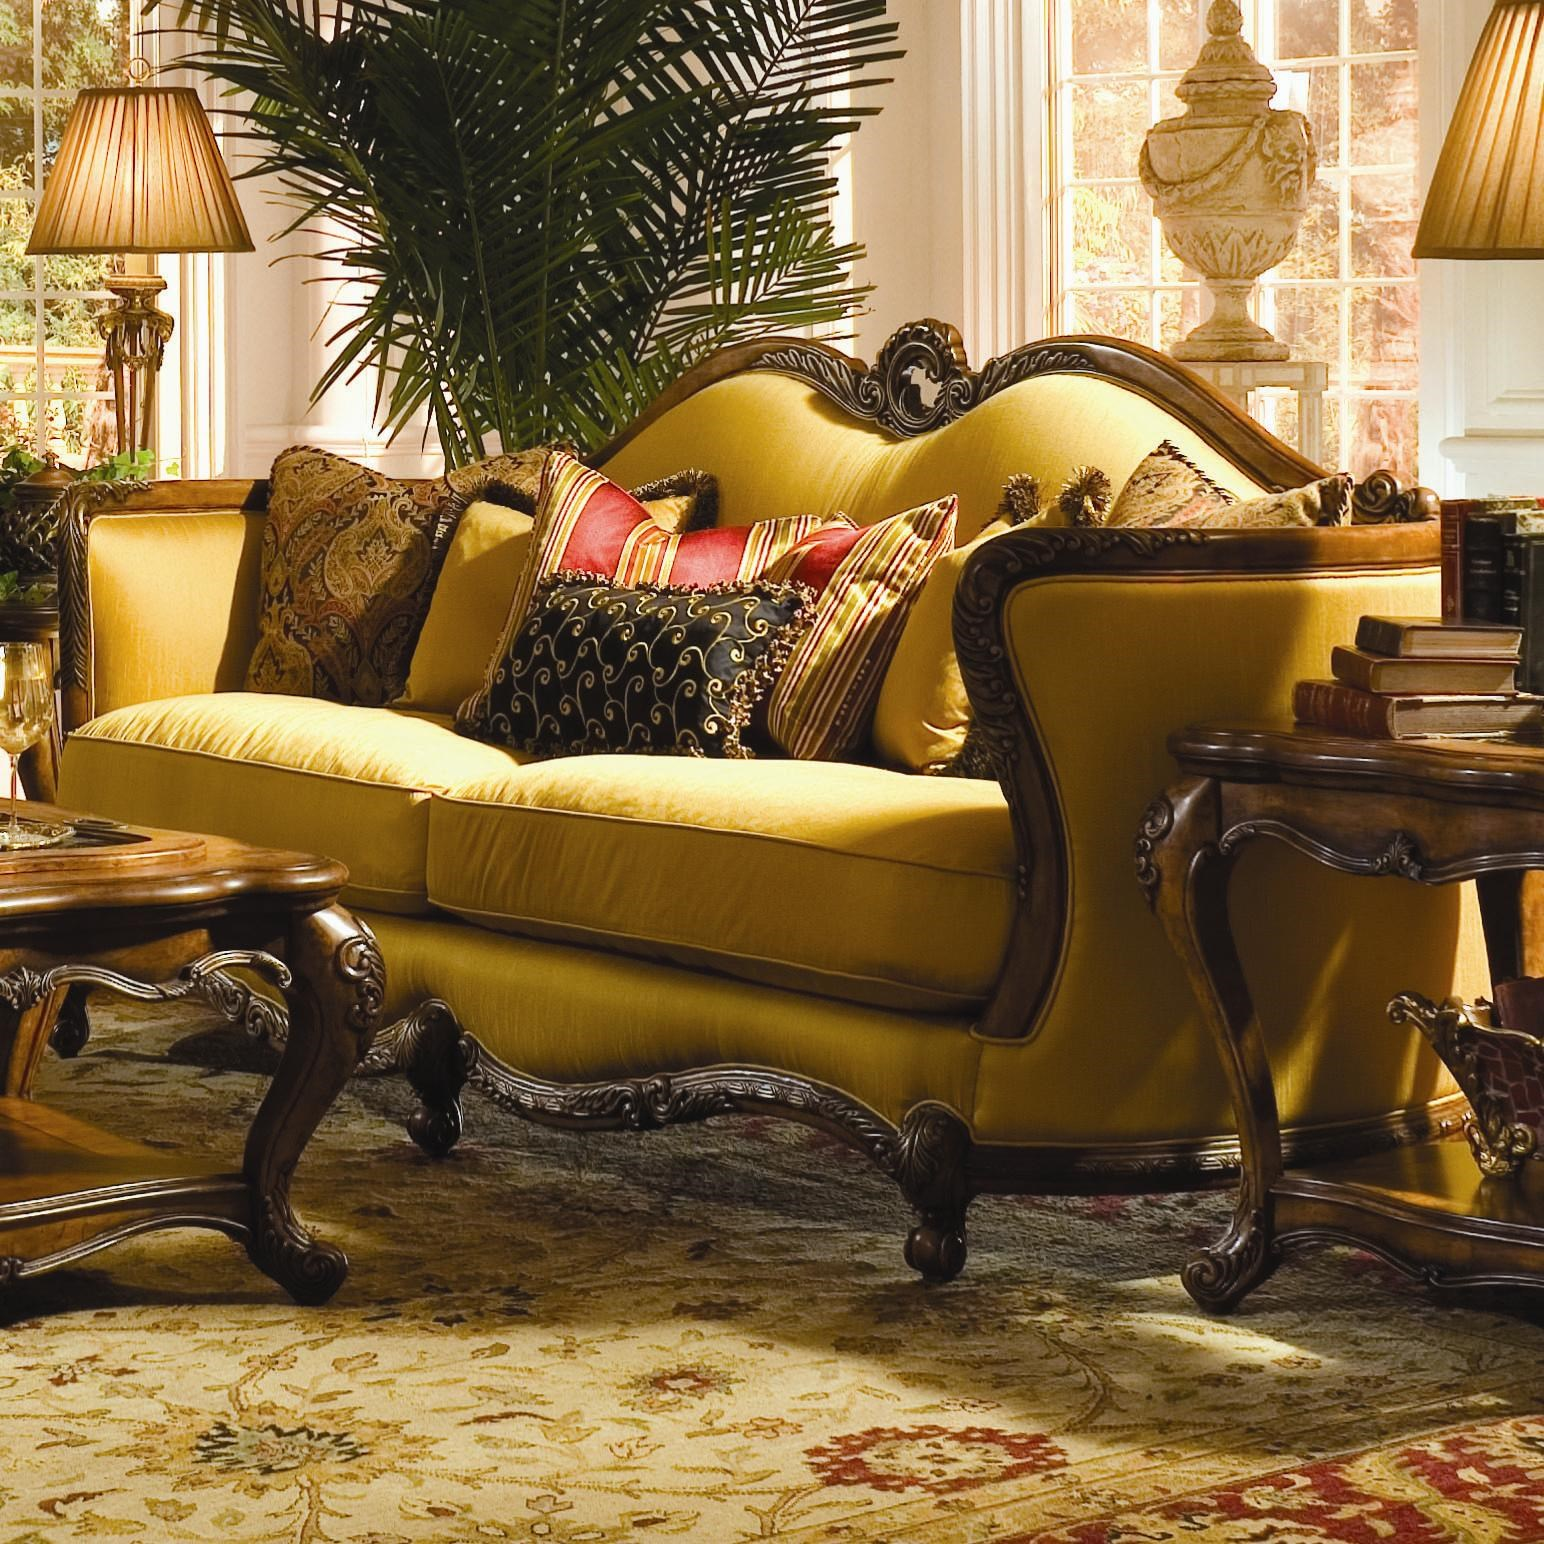 Michael Amini Palais Royale Wood Trim Sofa With Hand Carved Accents    Olindeu0027s Furniture   Sofa Part 77